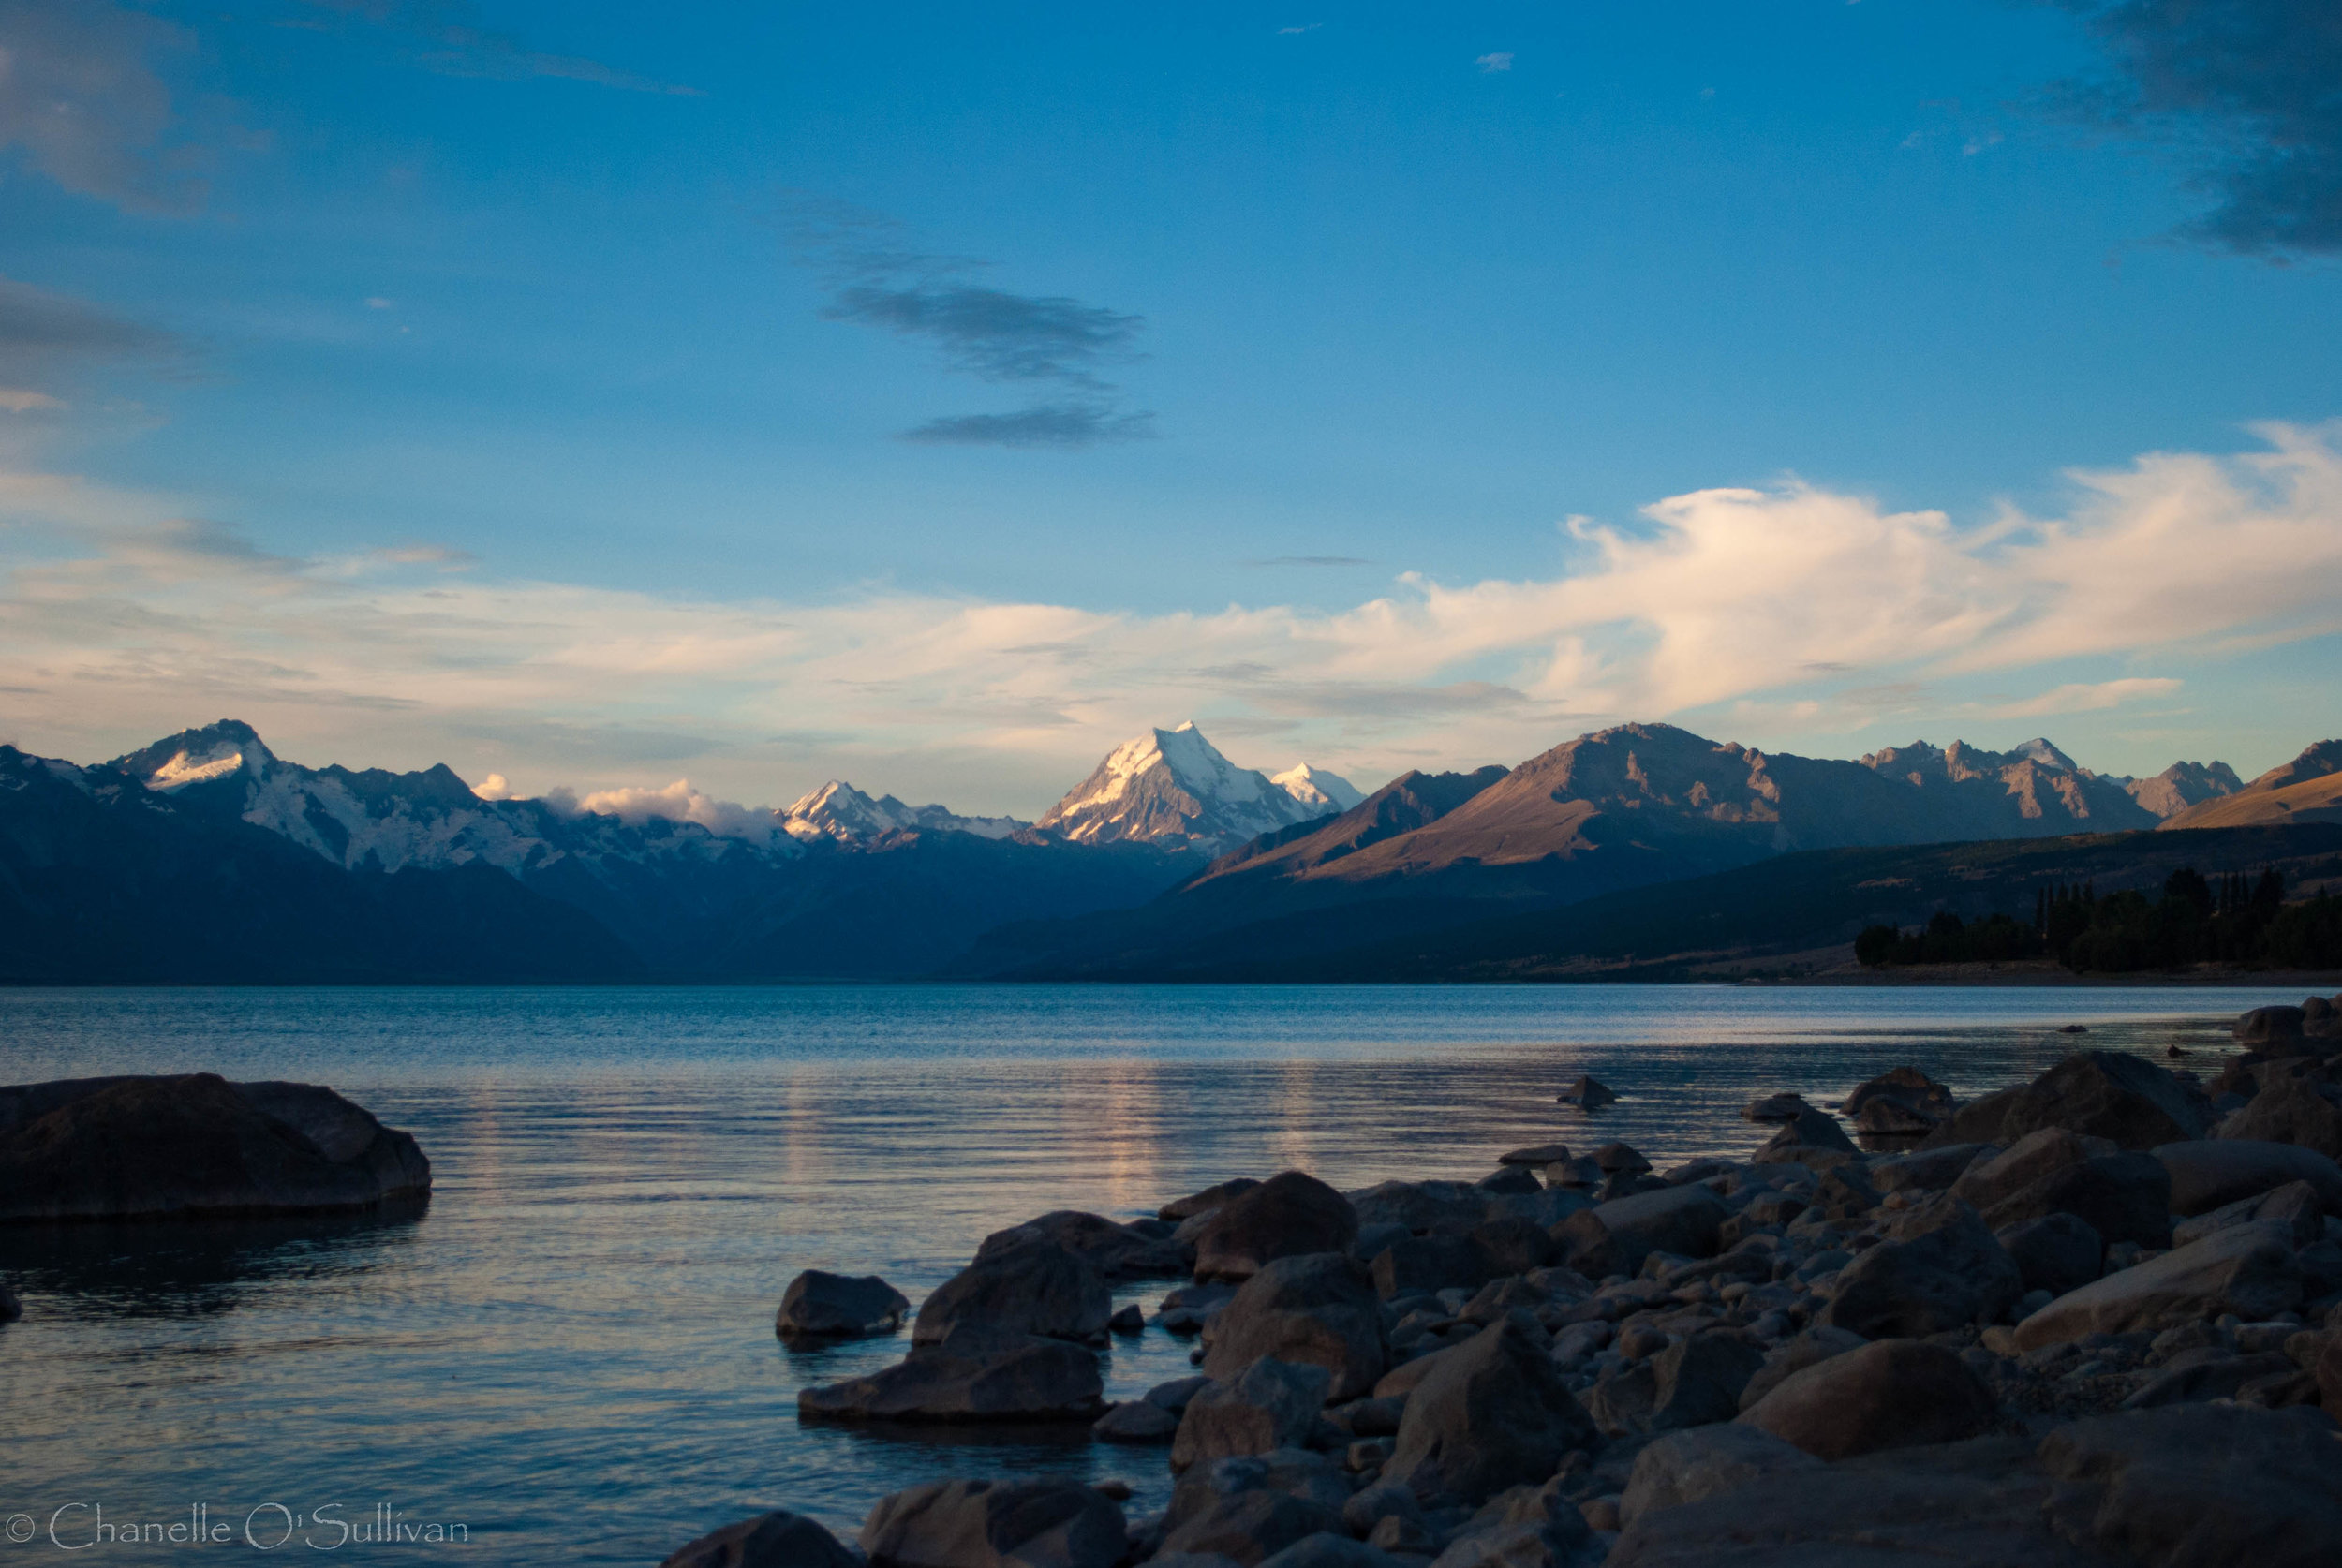 Sunset on the shores of Lake Pukaki mid-summer. This was taken from the Hayman Road side of the Lake.